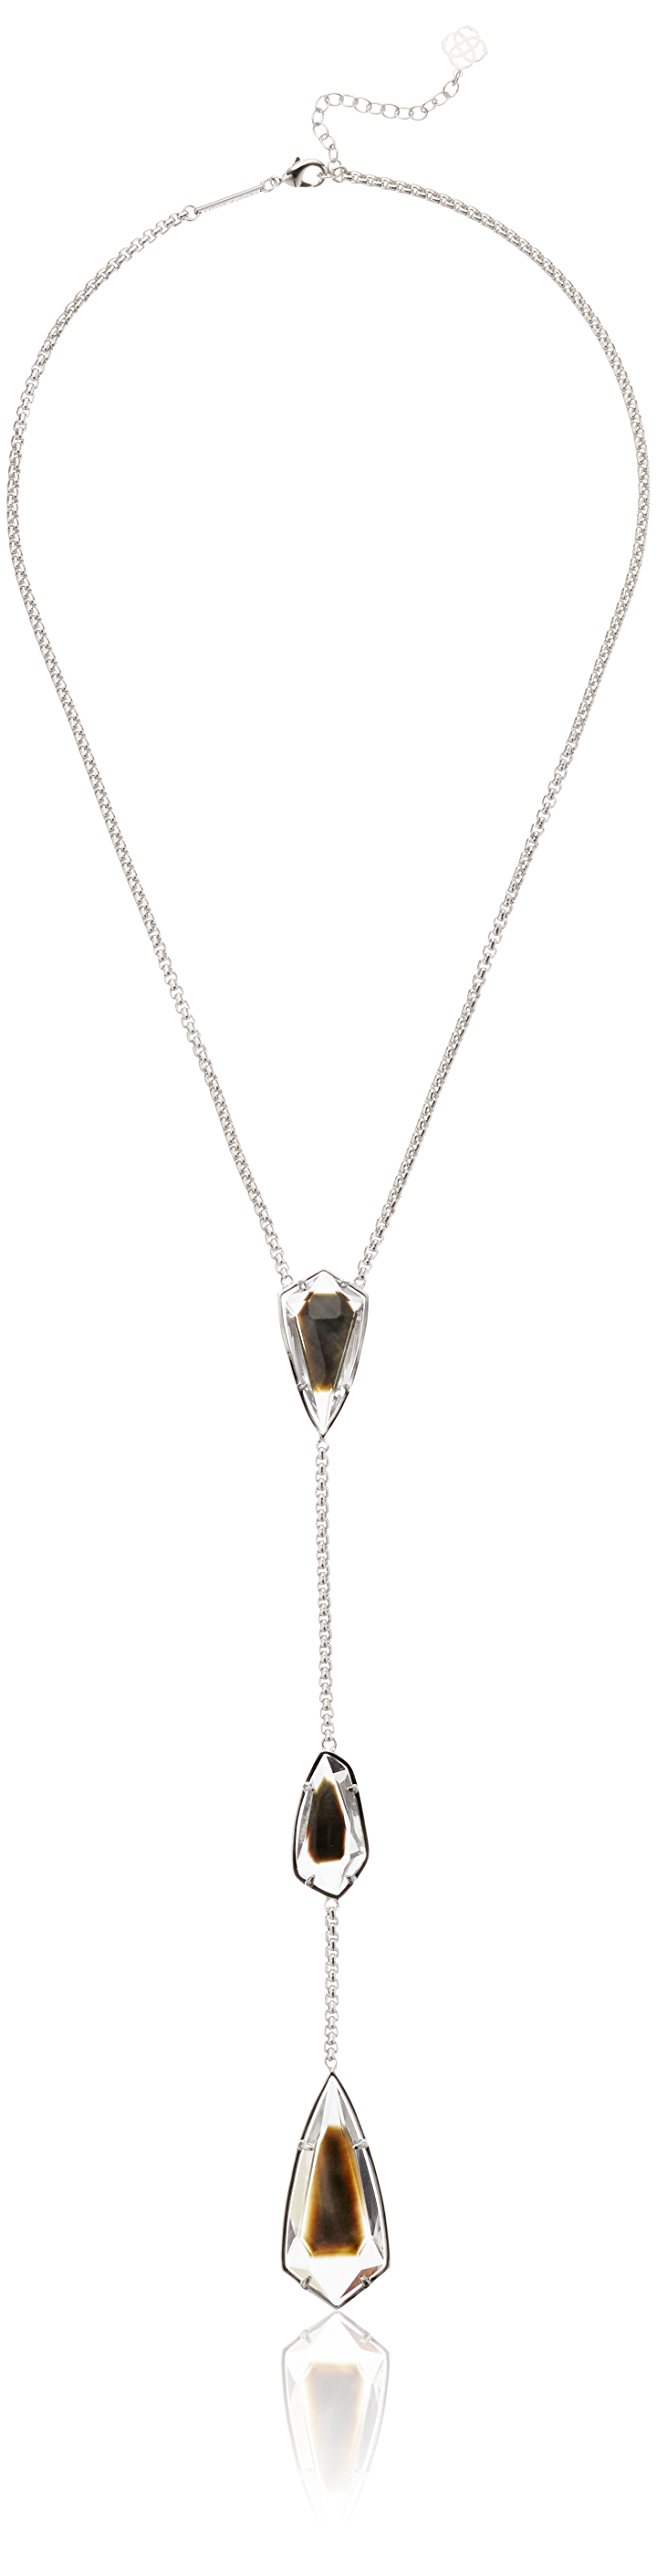 Kendra Scott Charlotte Rhodium Black Mother of Pearl Y-Shaped Necklace, 22'' + 2'' Extender